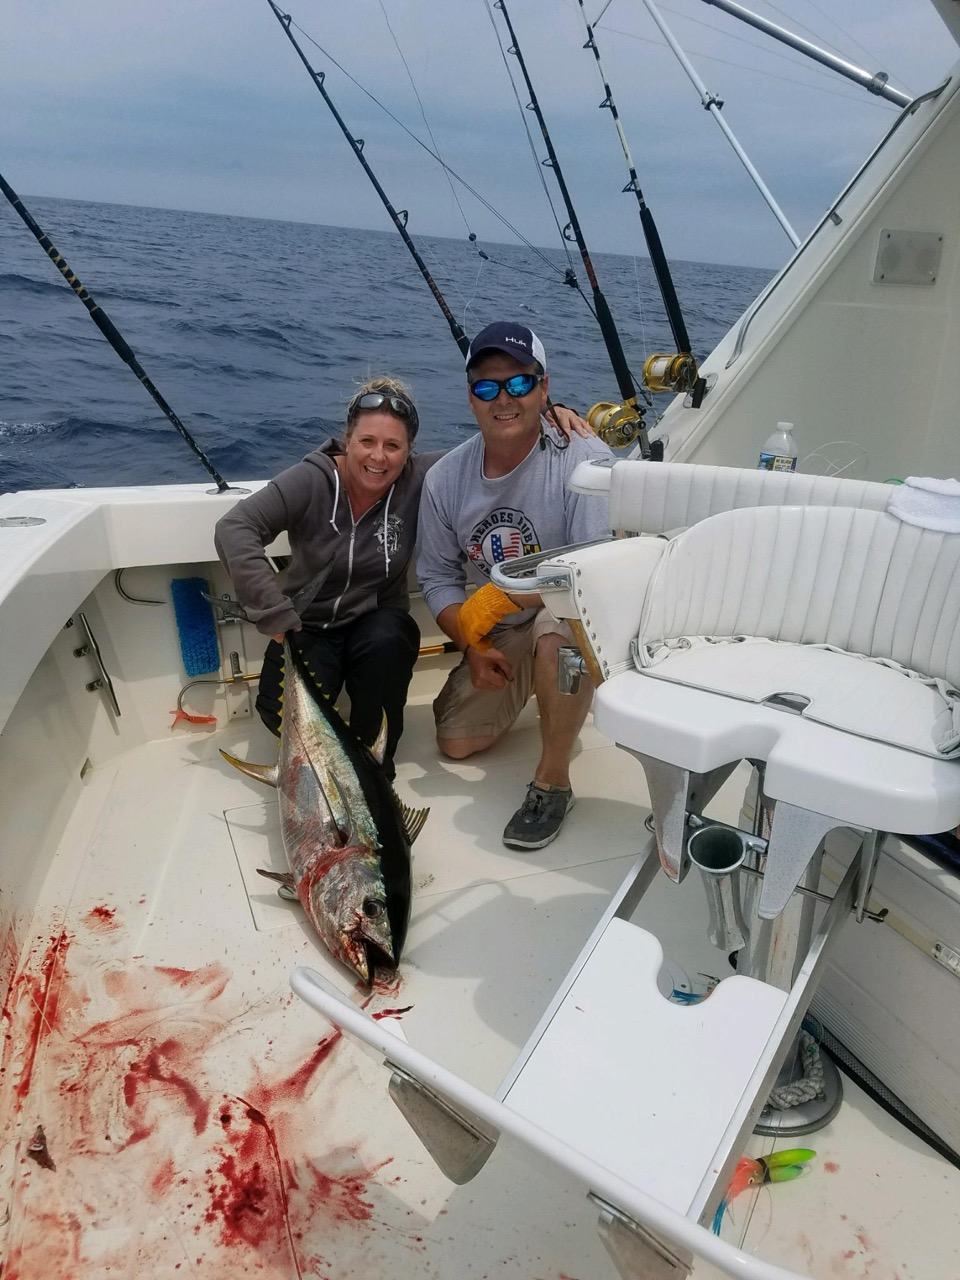 Jen Garmer, left, with Capt. Karl Roscher. Photo courtesy of Capt. Roscher